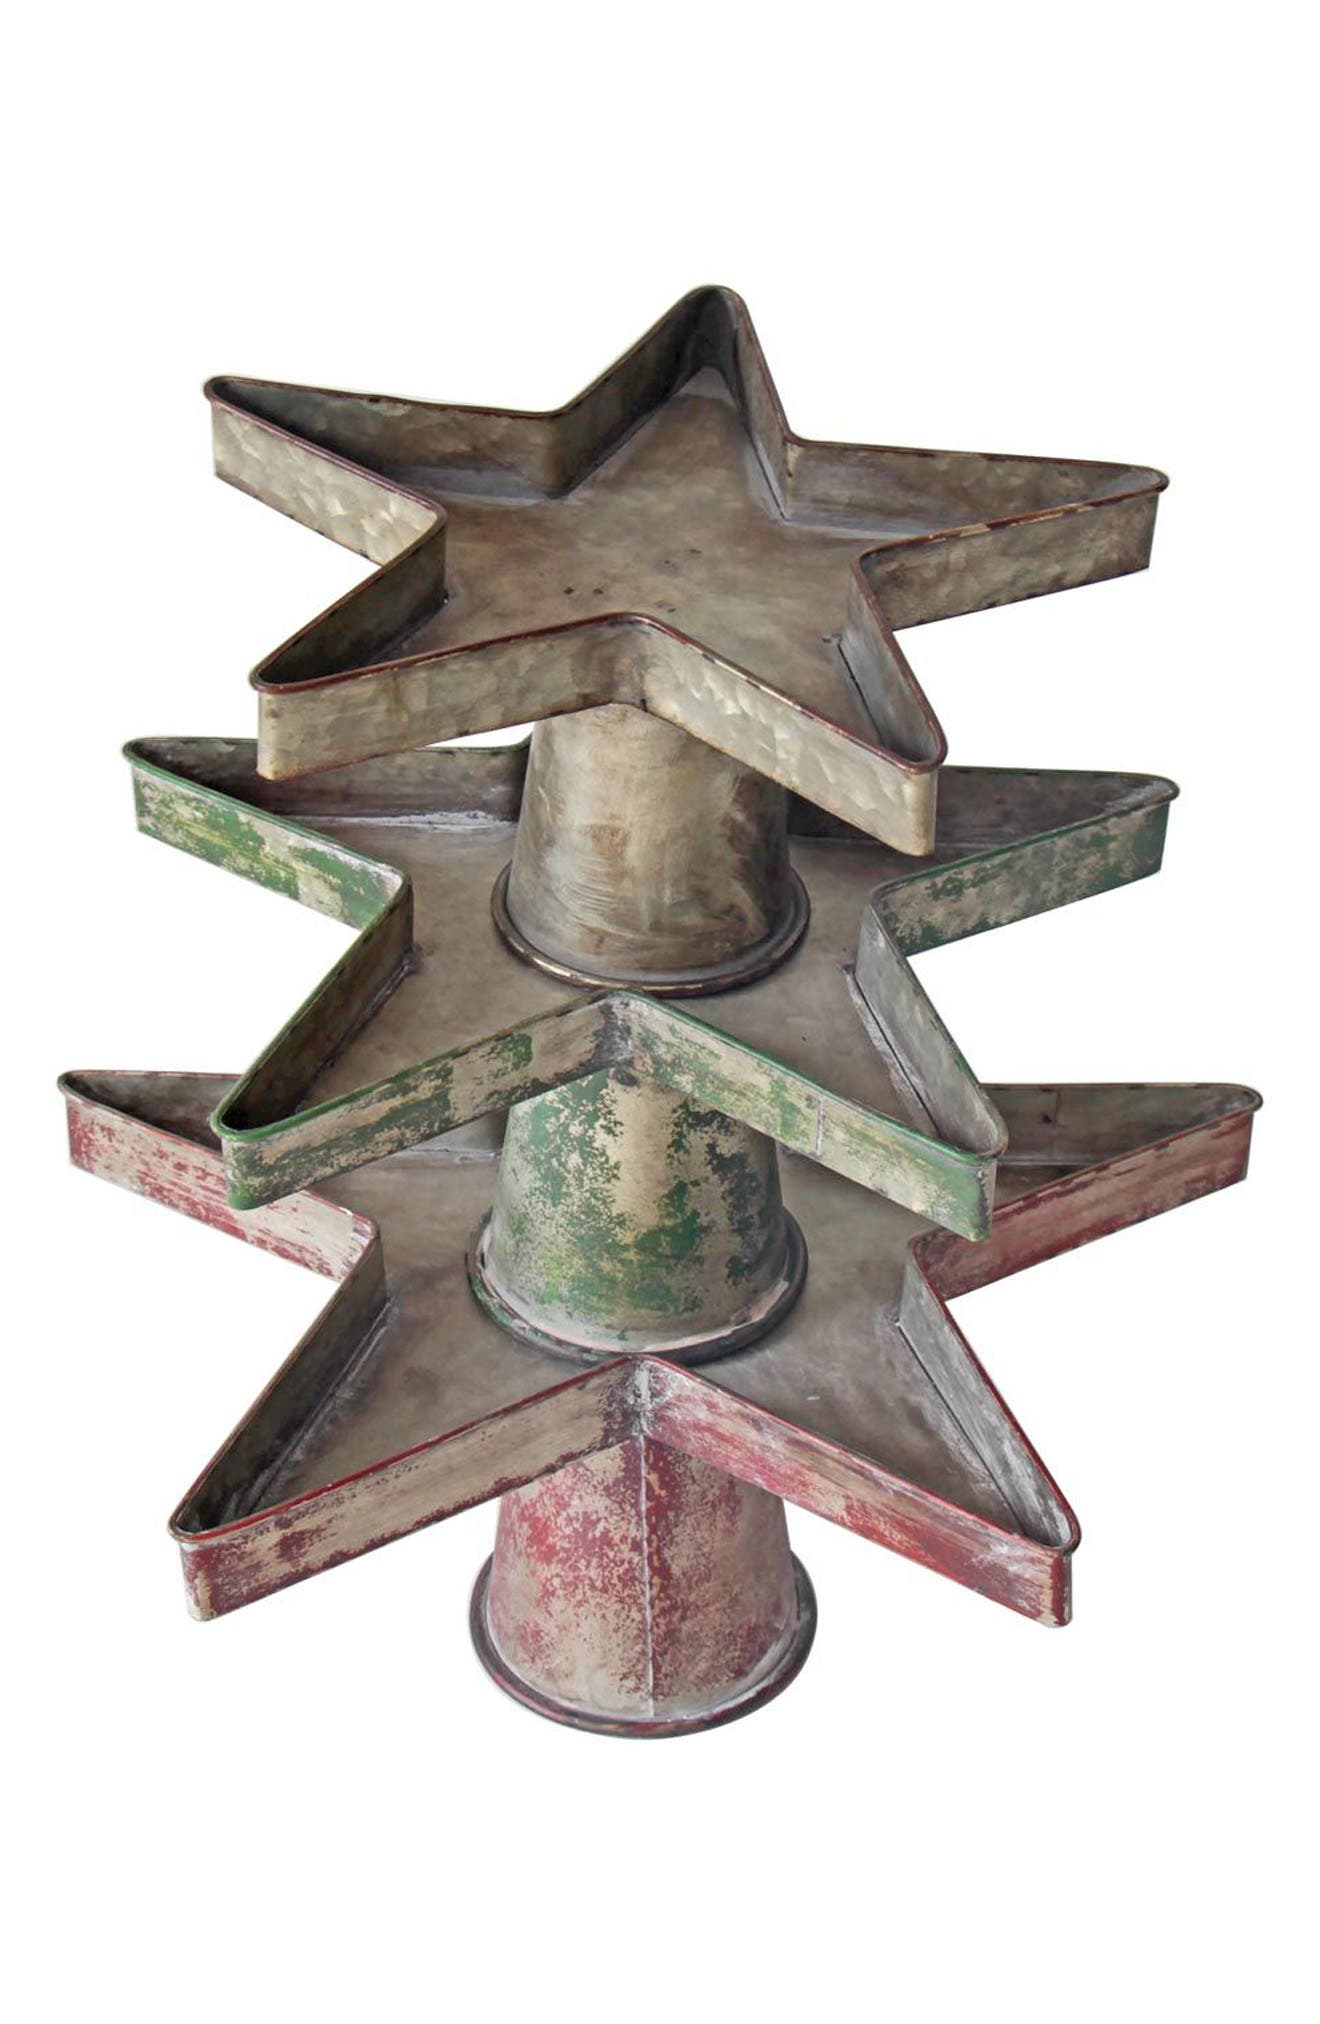 Main Image - Foreside Set of 3 Stackable Galvanized Metal Star Trays